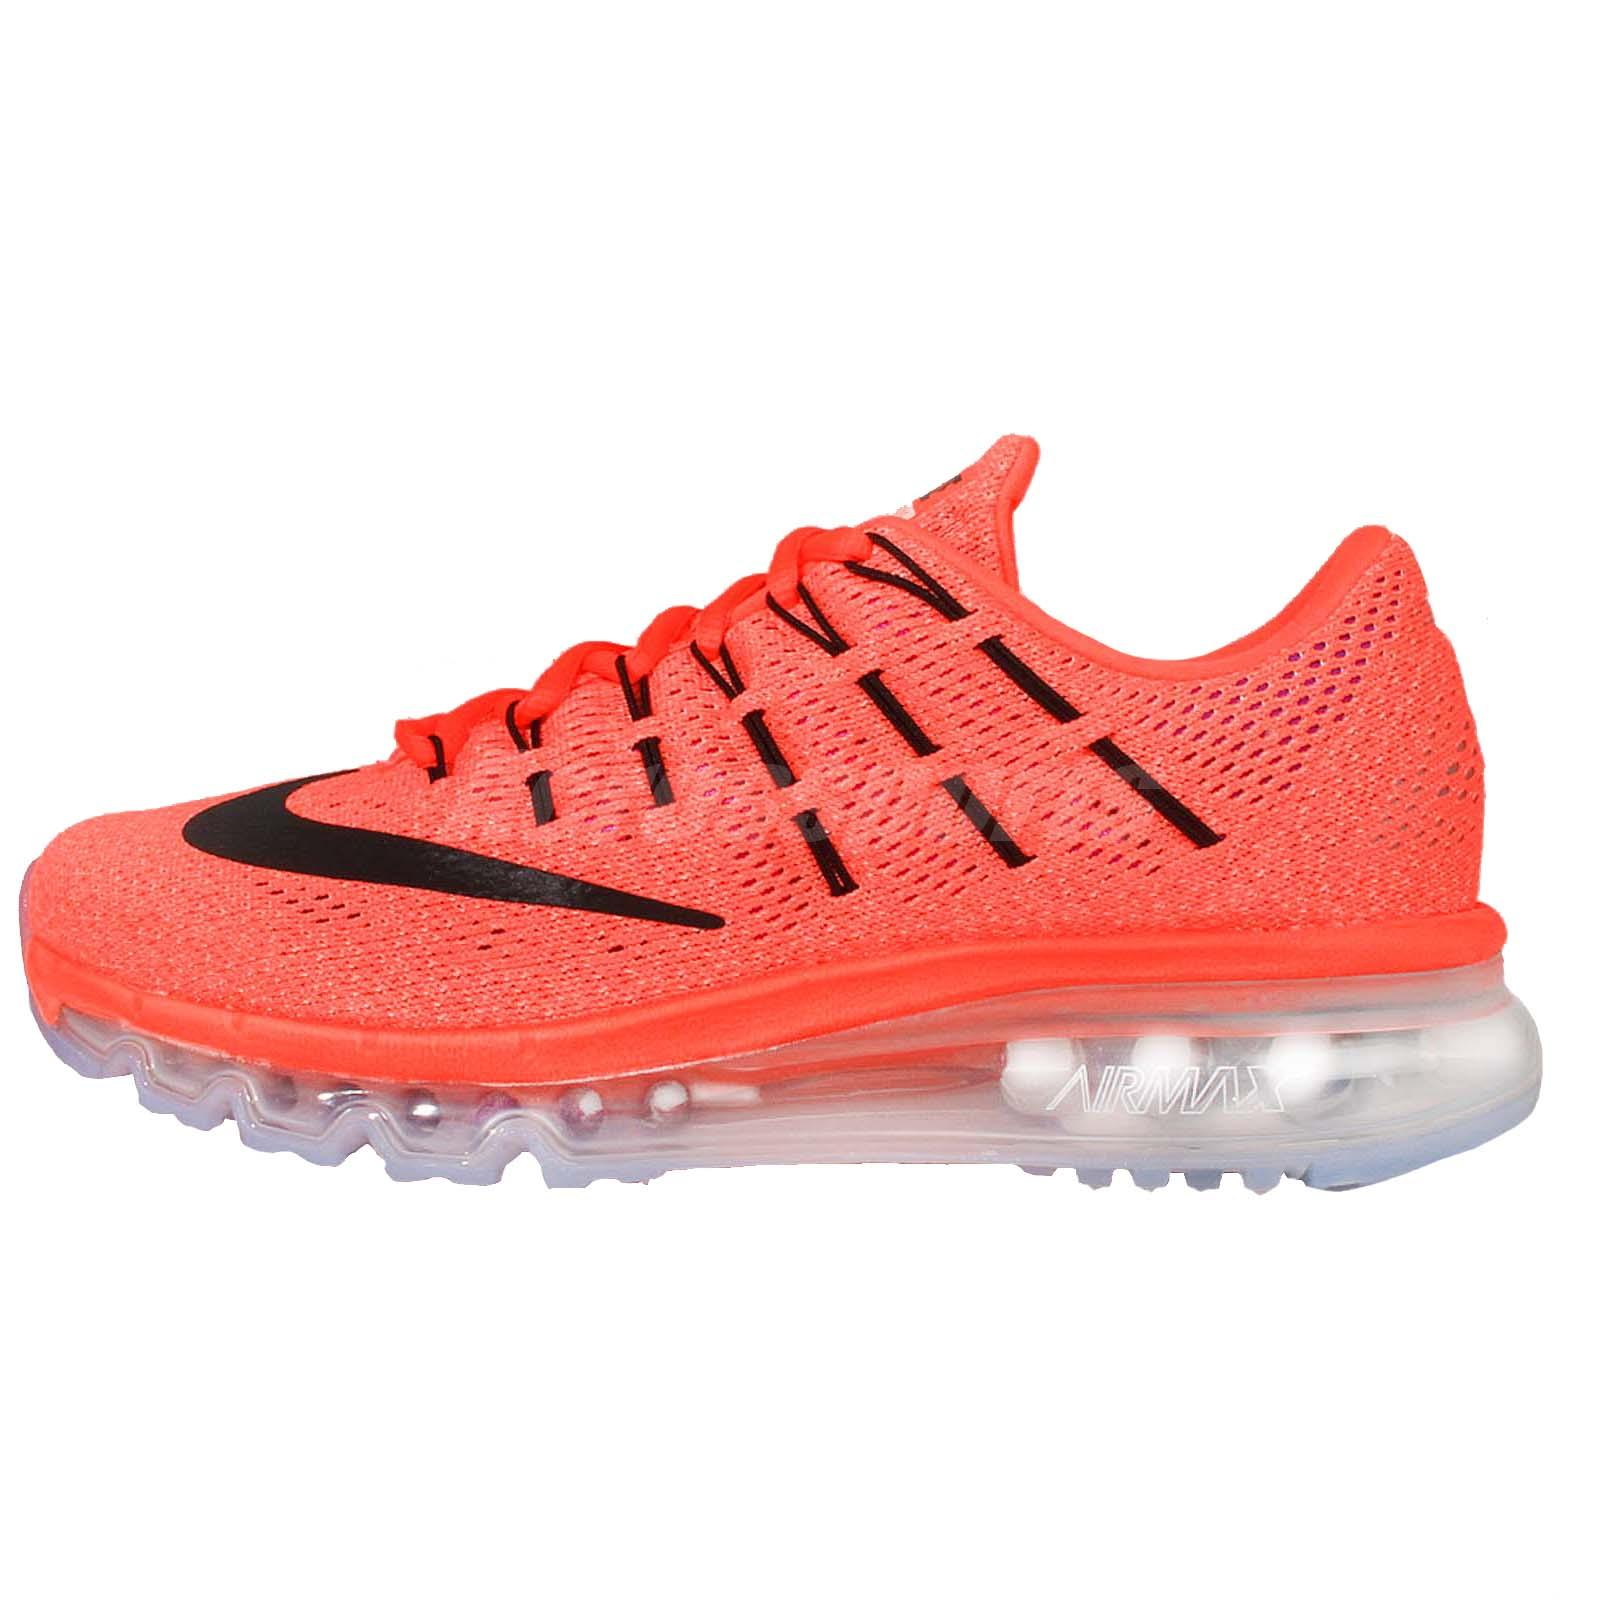 Wmns Nike Air Max 2016 Orange Black Womens Running Shoes